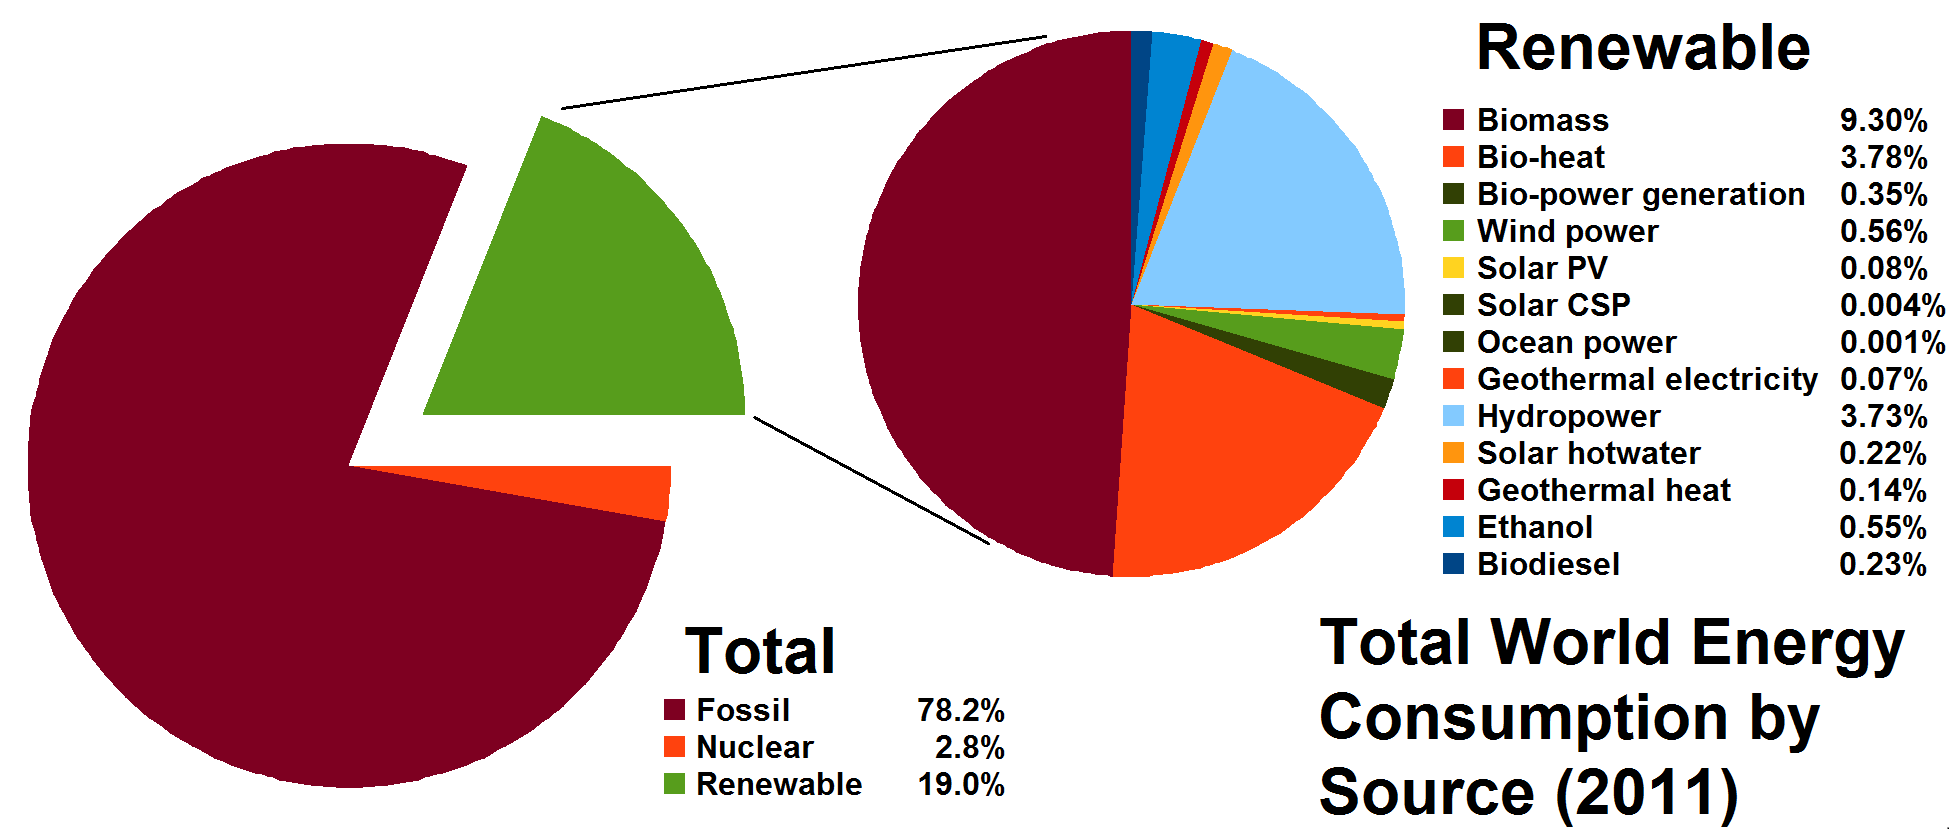 File:Total World Energy Consumption by Source 2011.png - Wikimedia ...